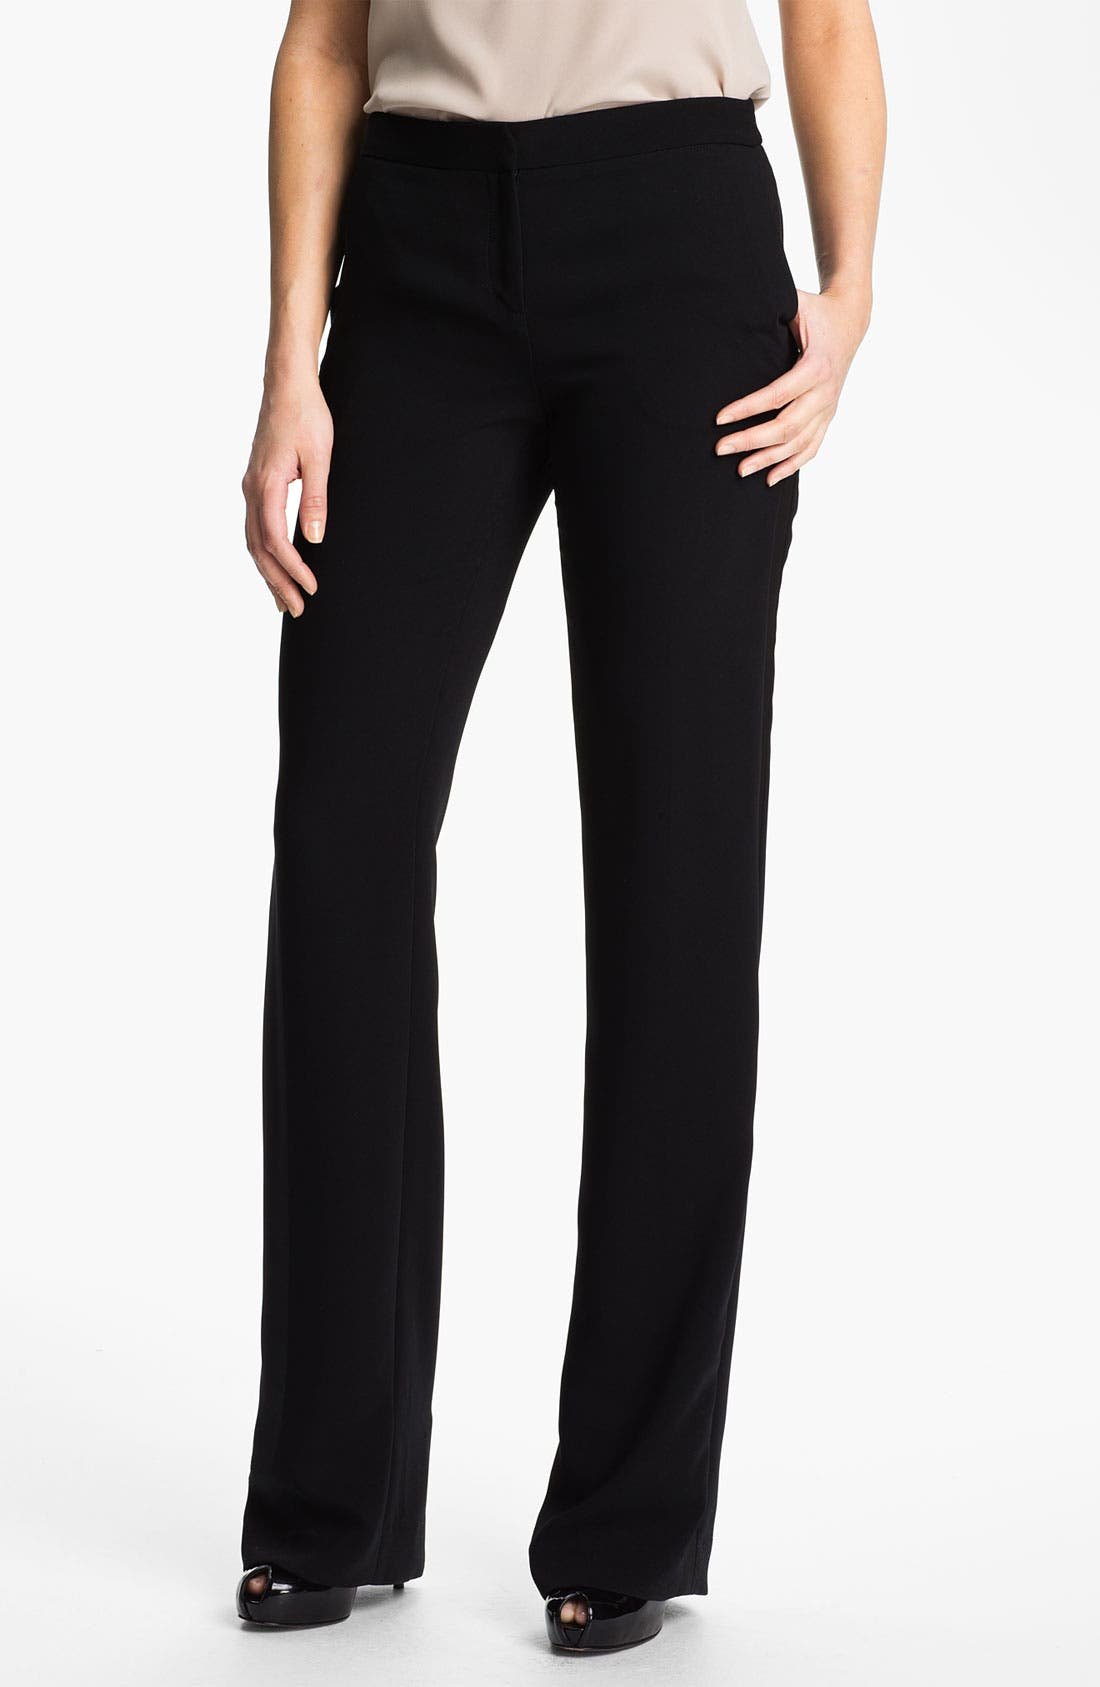 Alternate Image 1 Selected - Anne Klein Tuxedo Pants (Petite)